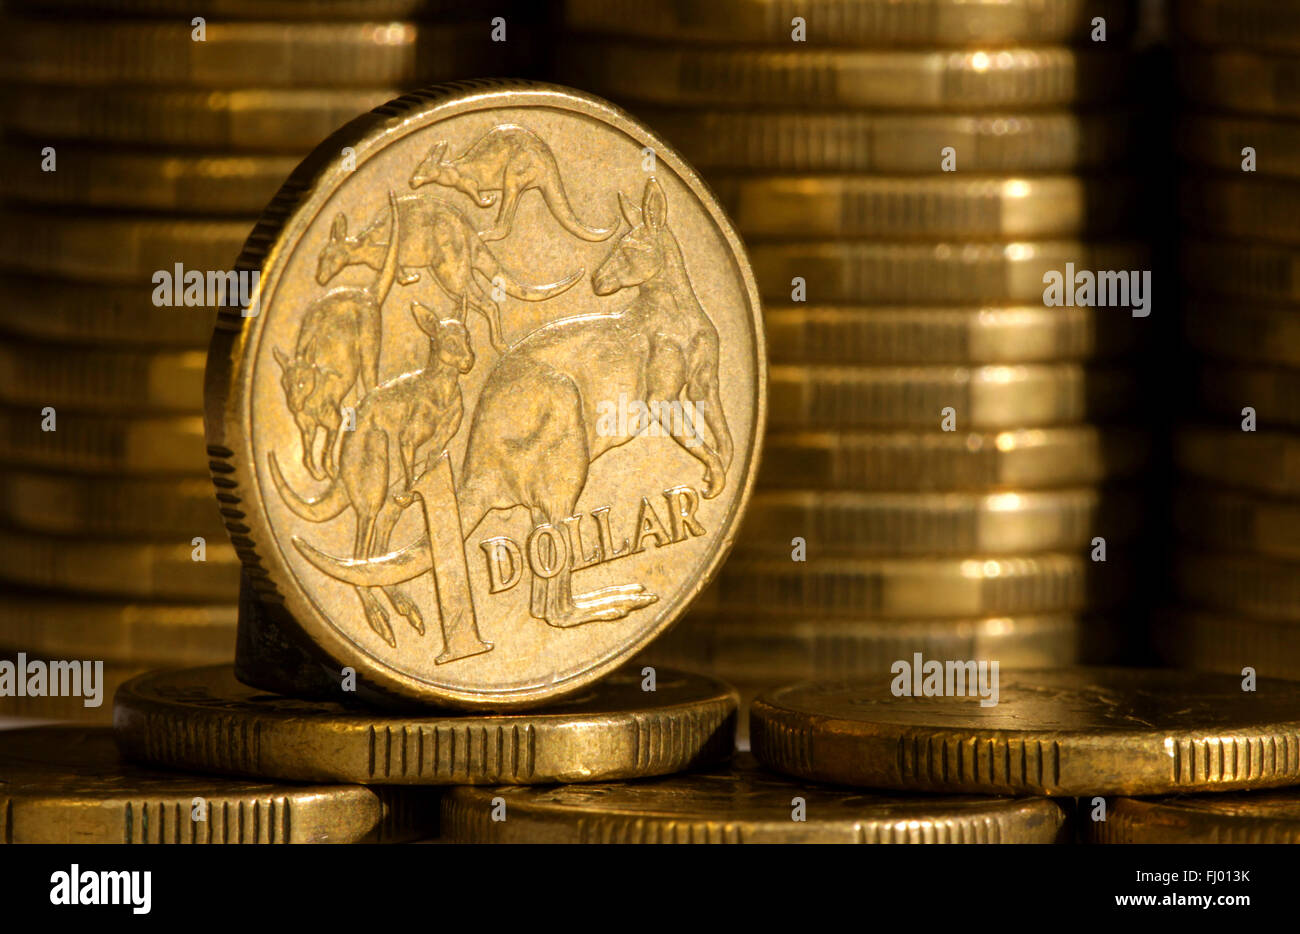 An Australian dollar coin with stacks of coins in background. - Stock Image